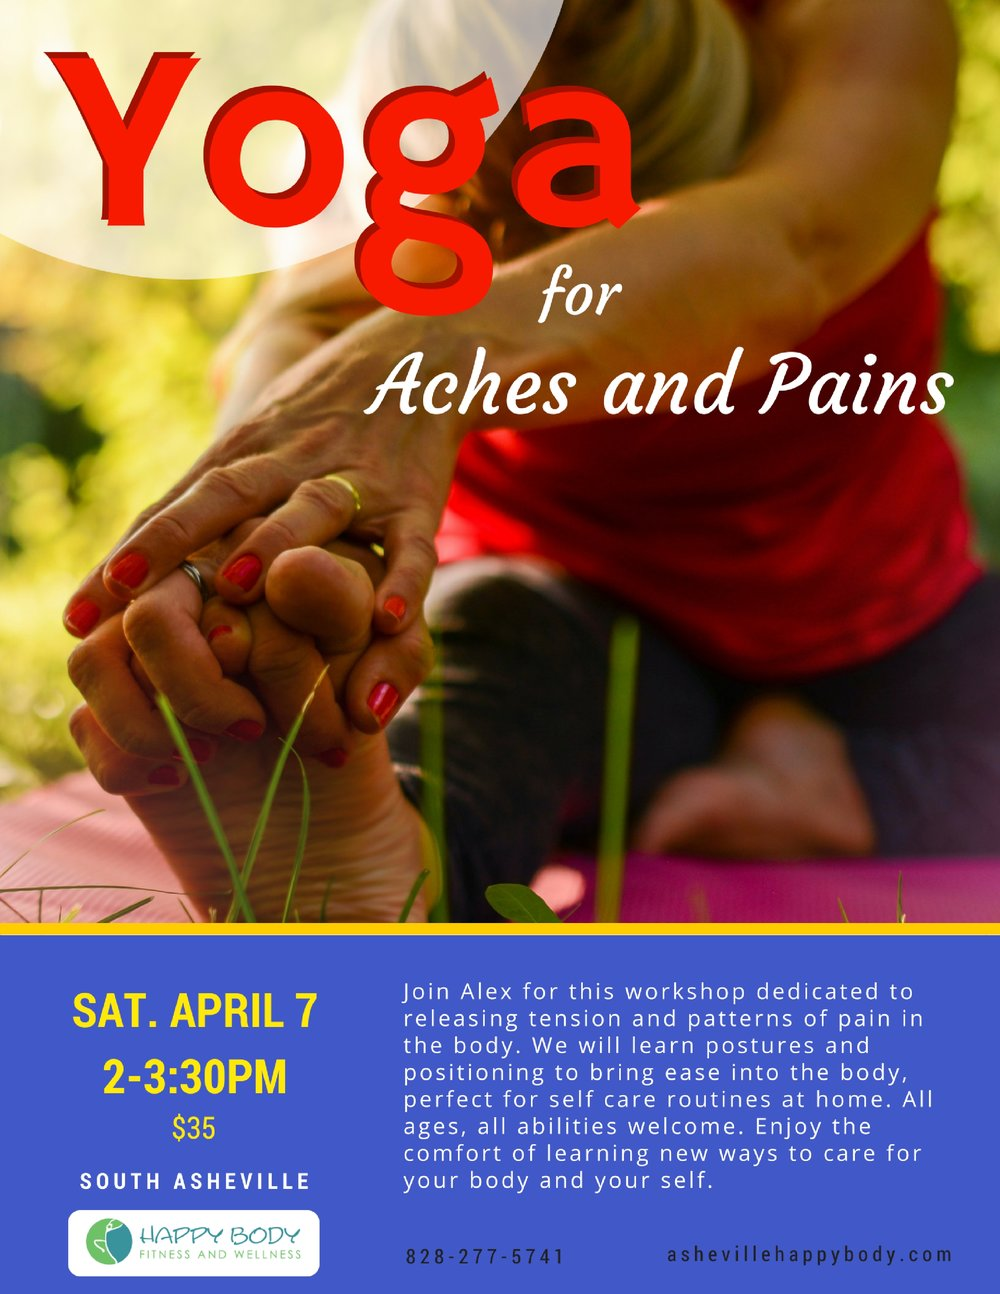 Yoga for Aches and Pains.jpg